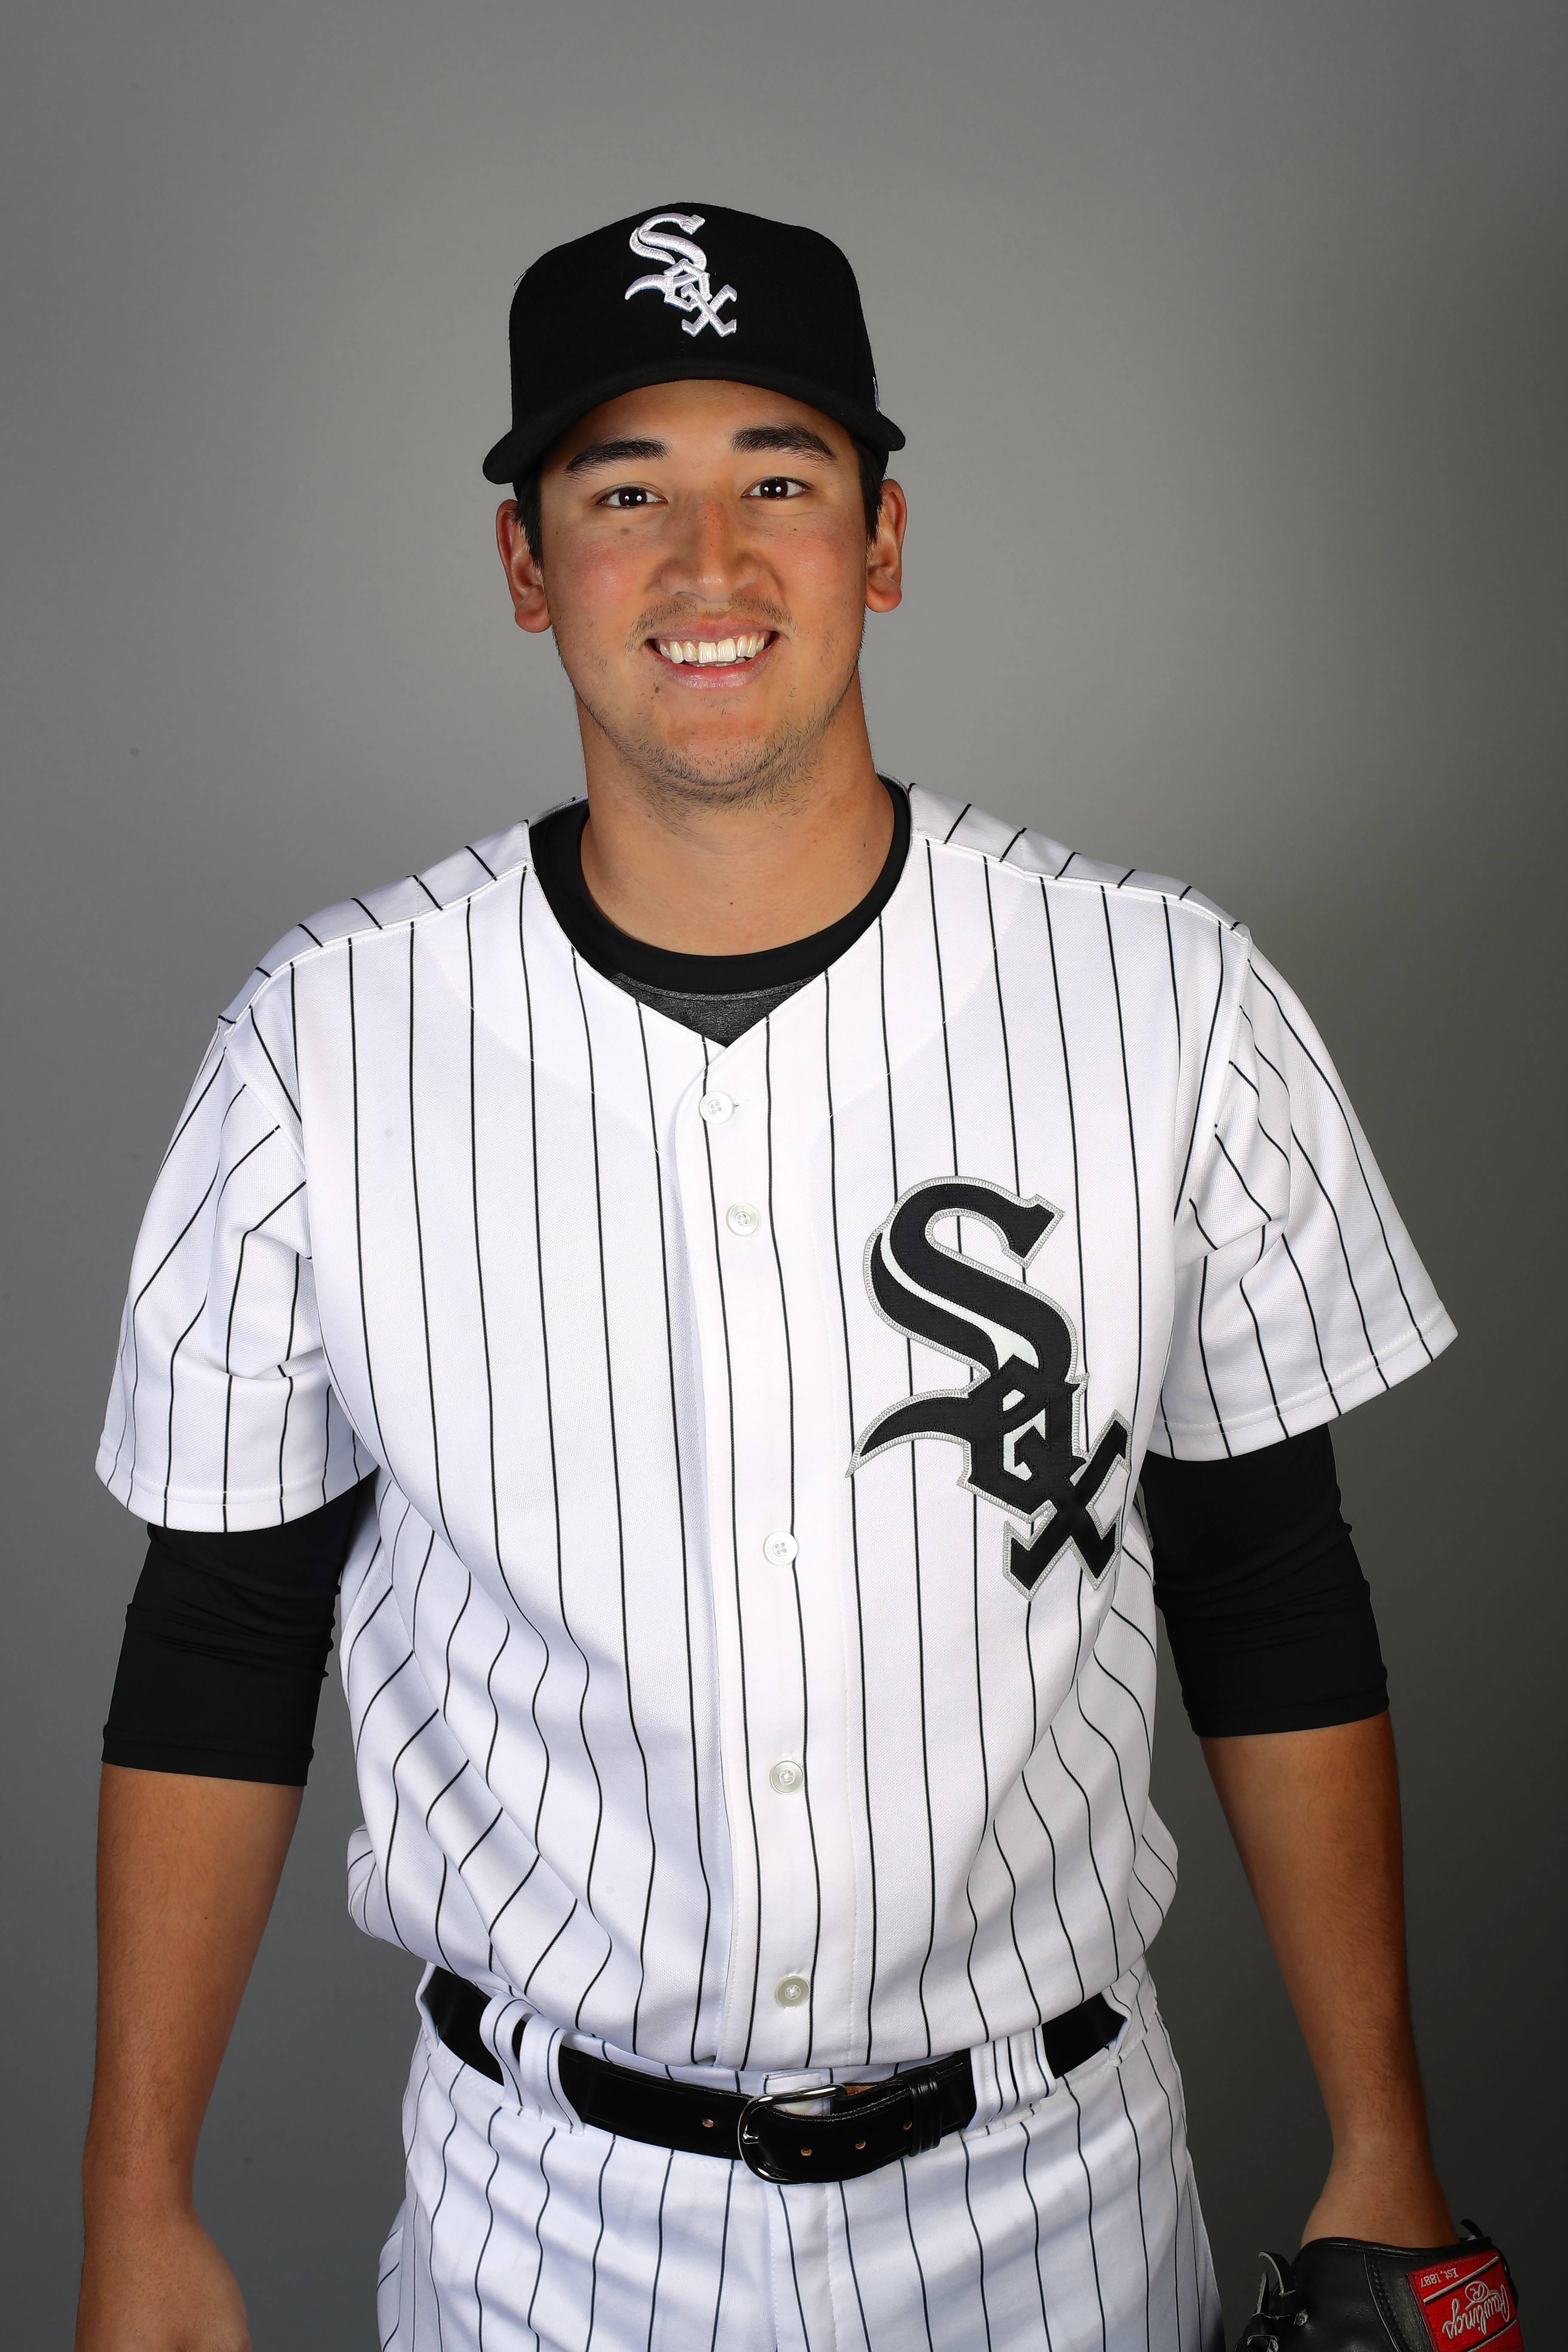 Dane Dunning of the White Sox had Tommy John surgery Monday in Florida, and is out for the season.